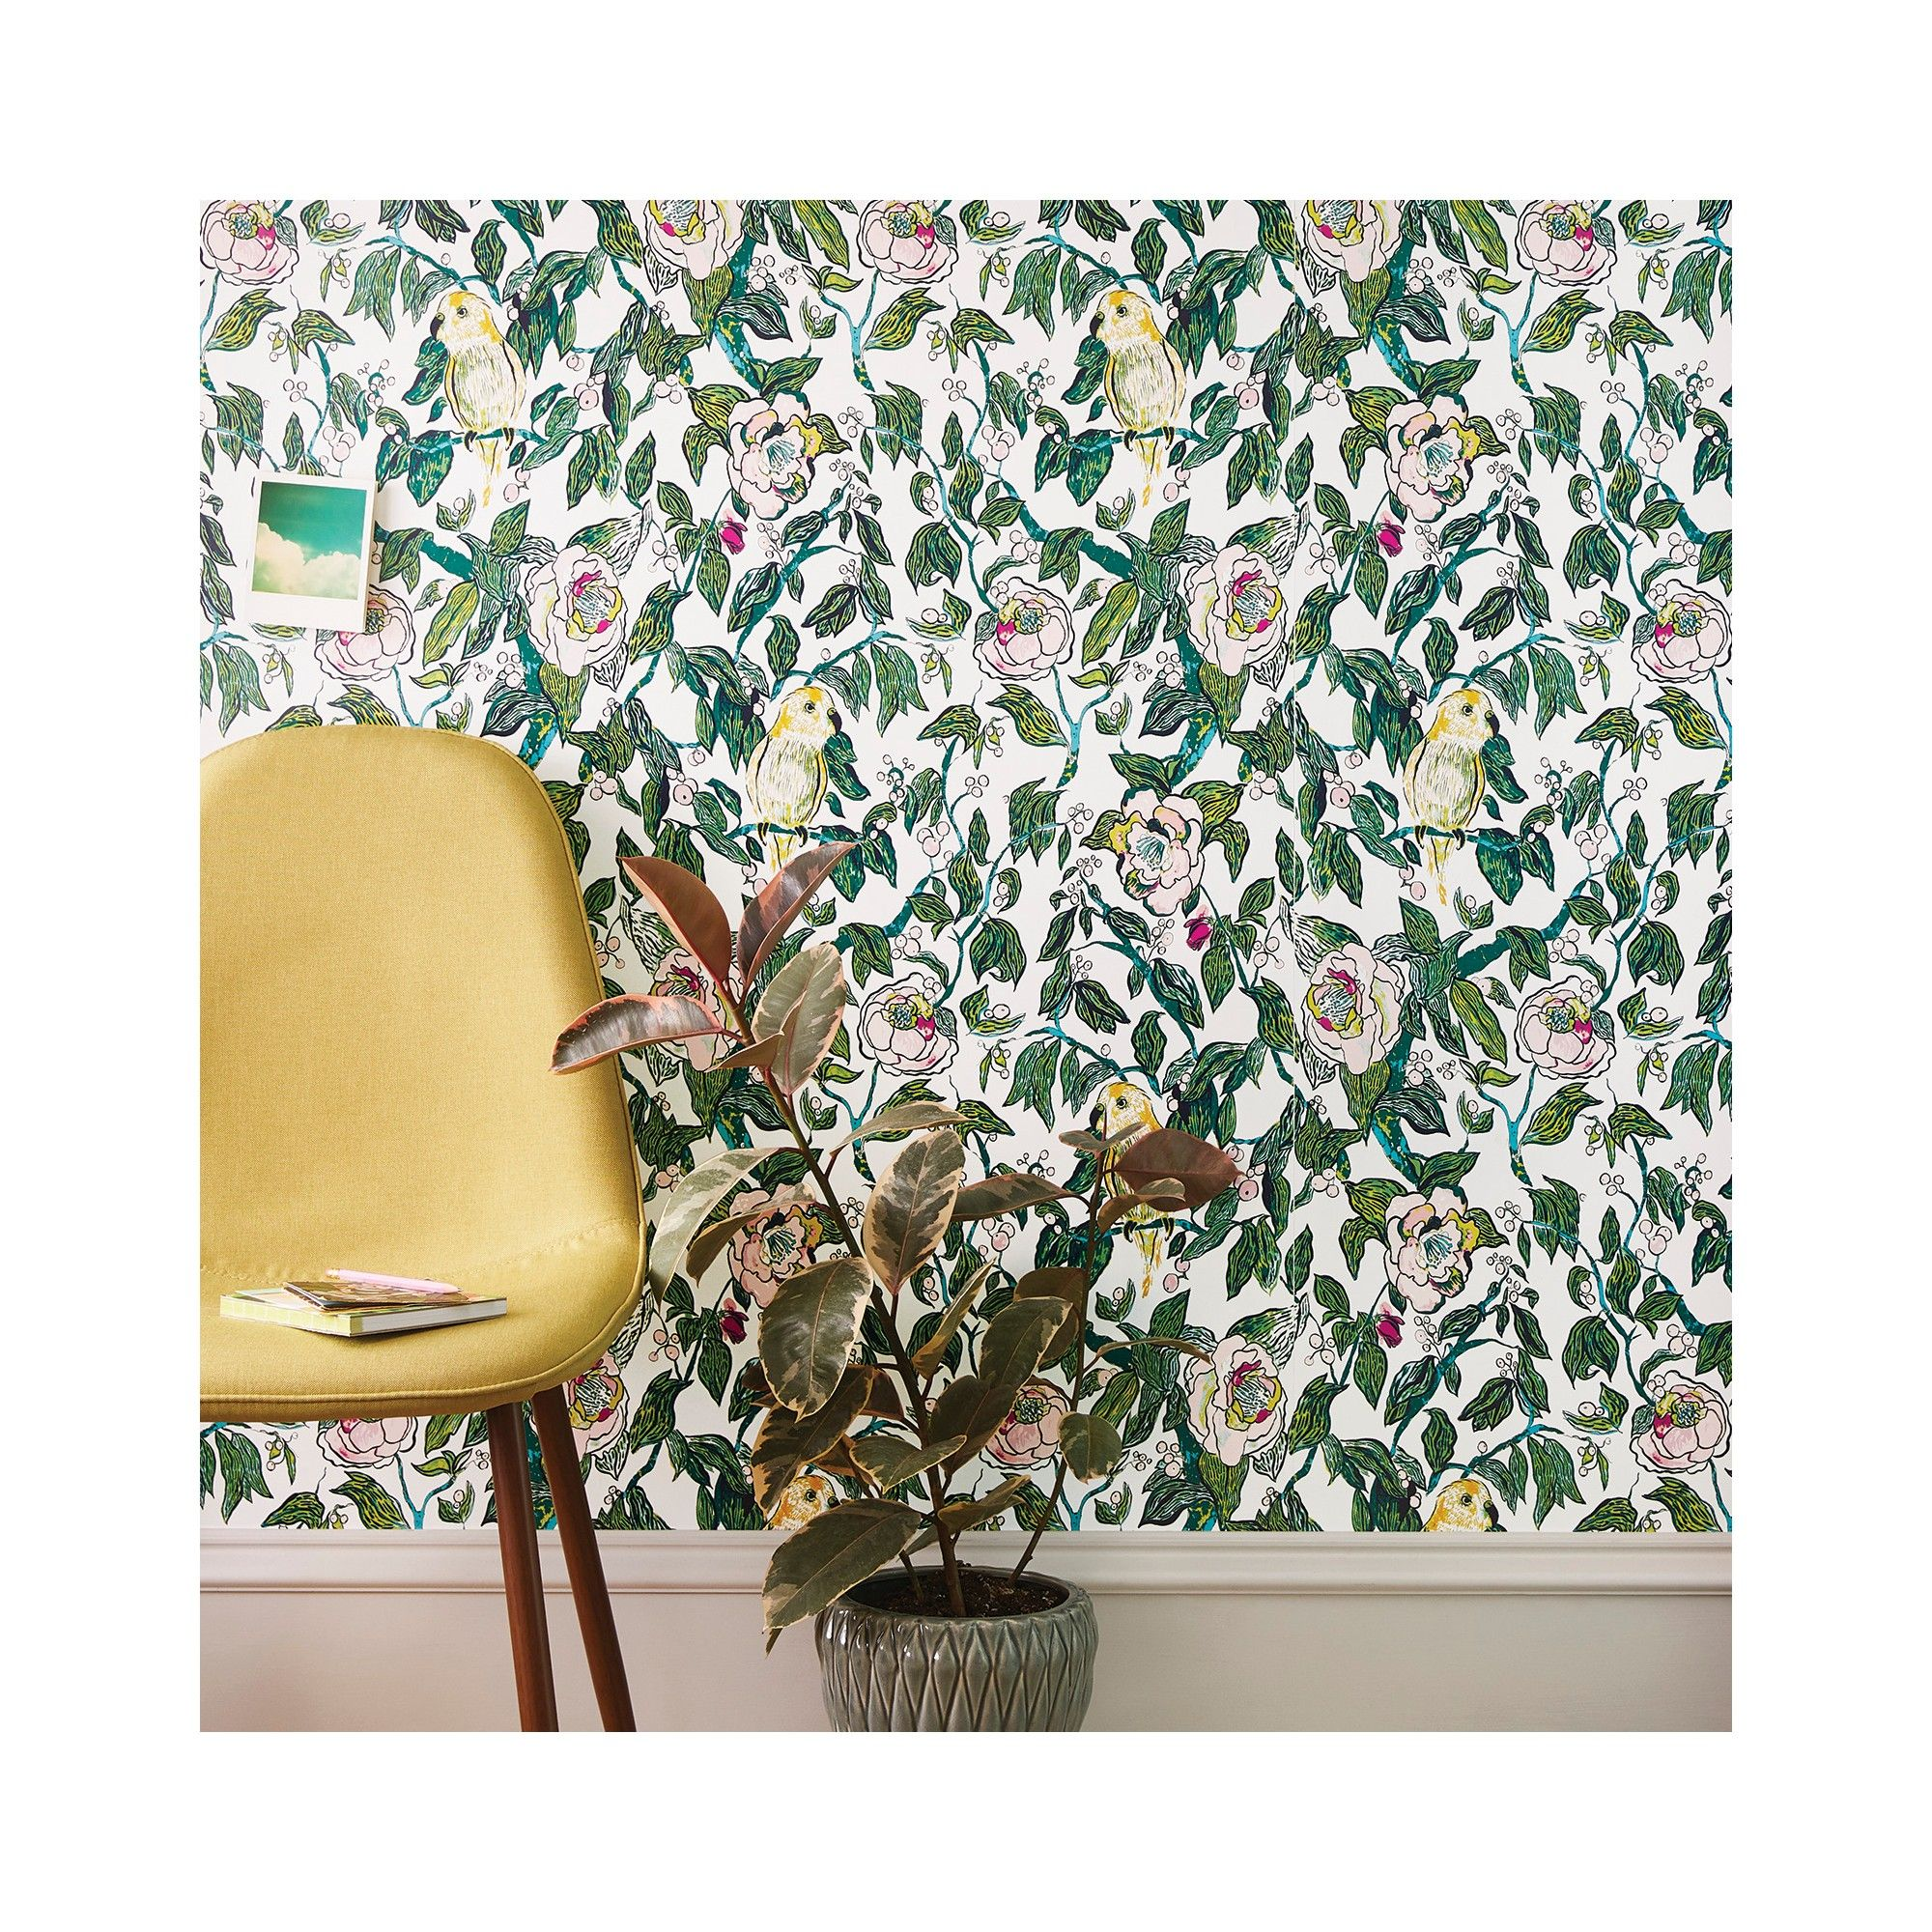 Canary Floral Peel Stick Wallpaper Opalhouse Peel And Stick Wallpaper Removable Wallpaper Floral Wallpaper